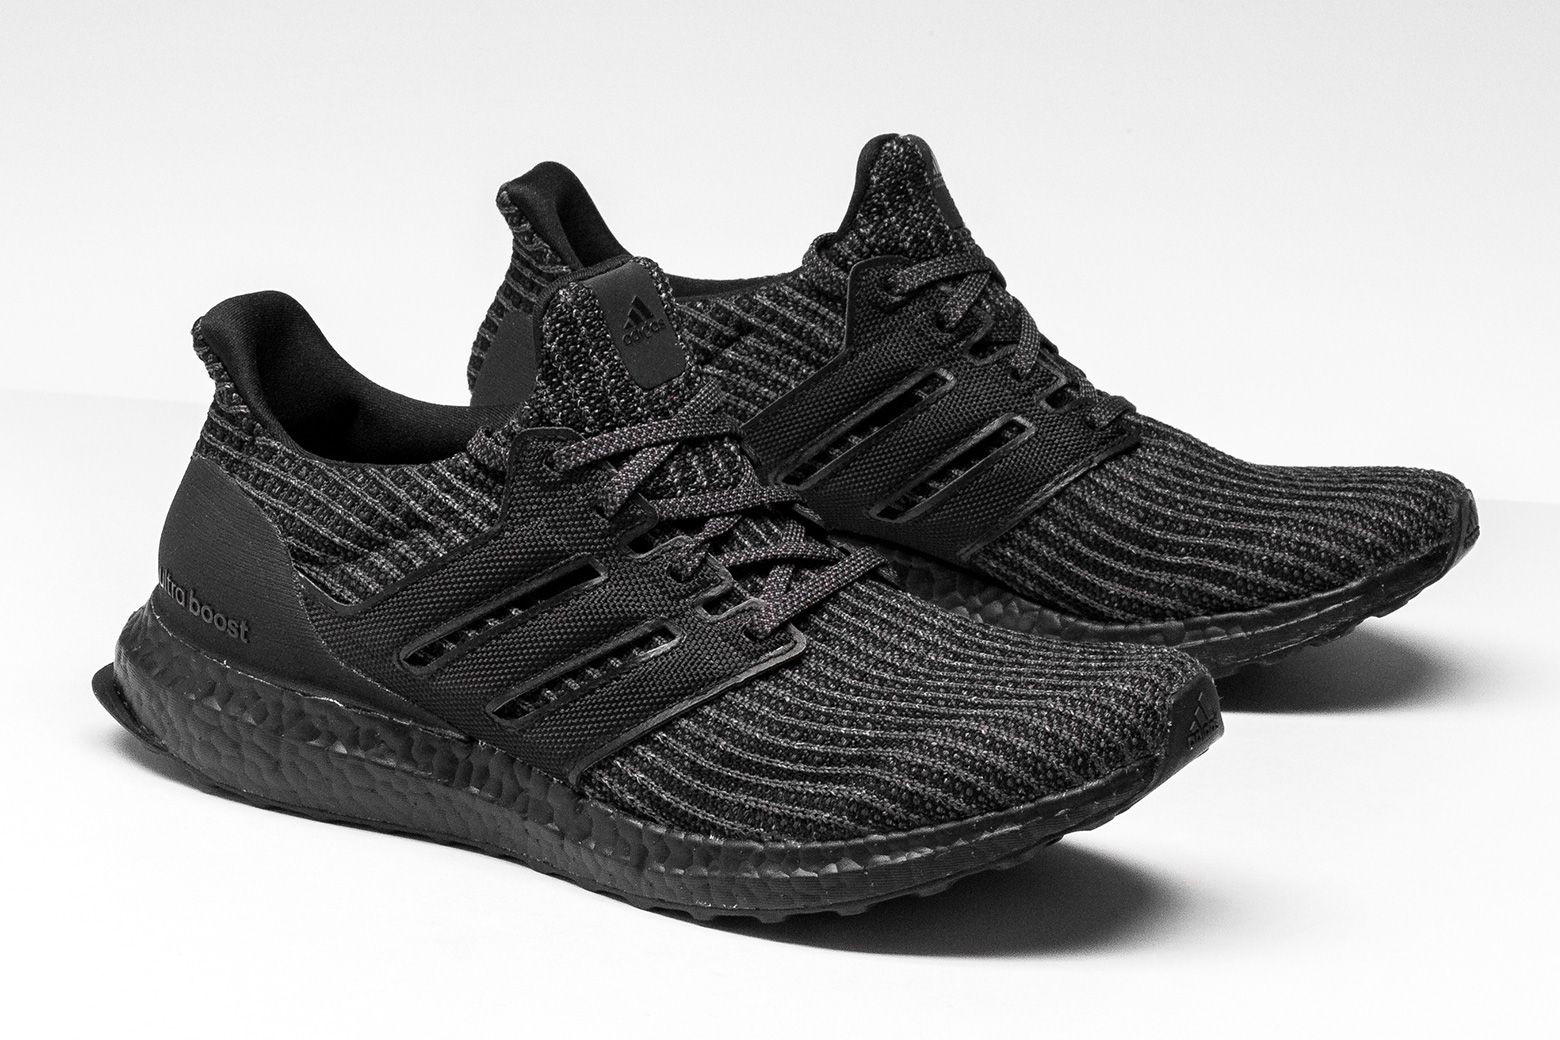 online retailer d9e2d 65183 When it comes to the Adidas Ultra Boost 4.0, always bet on black.